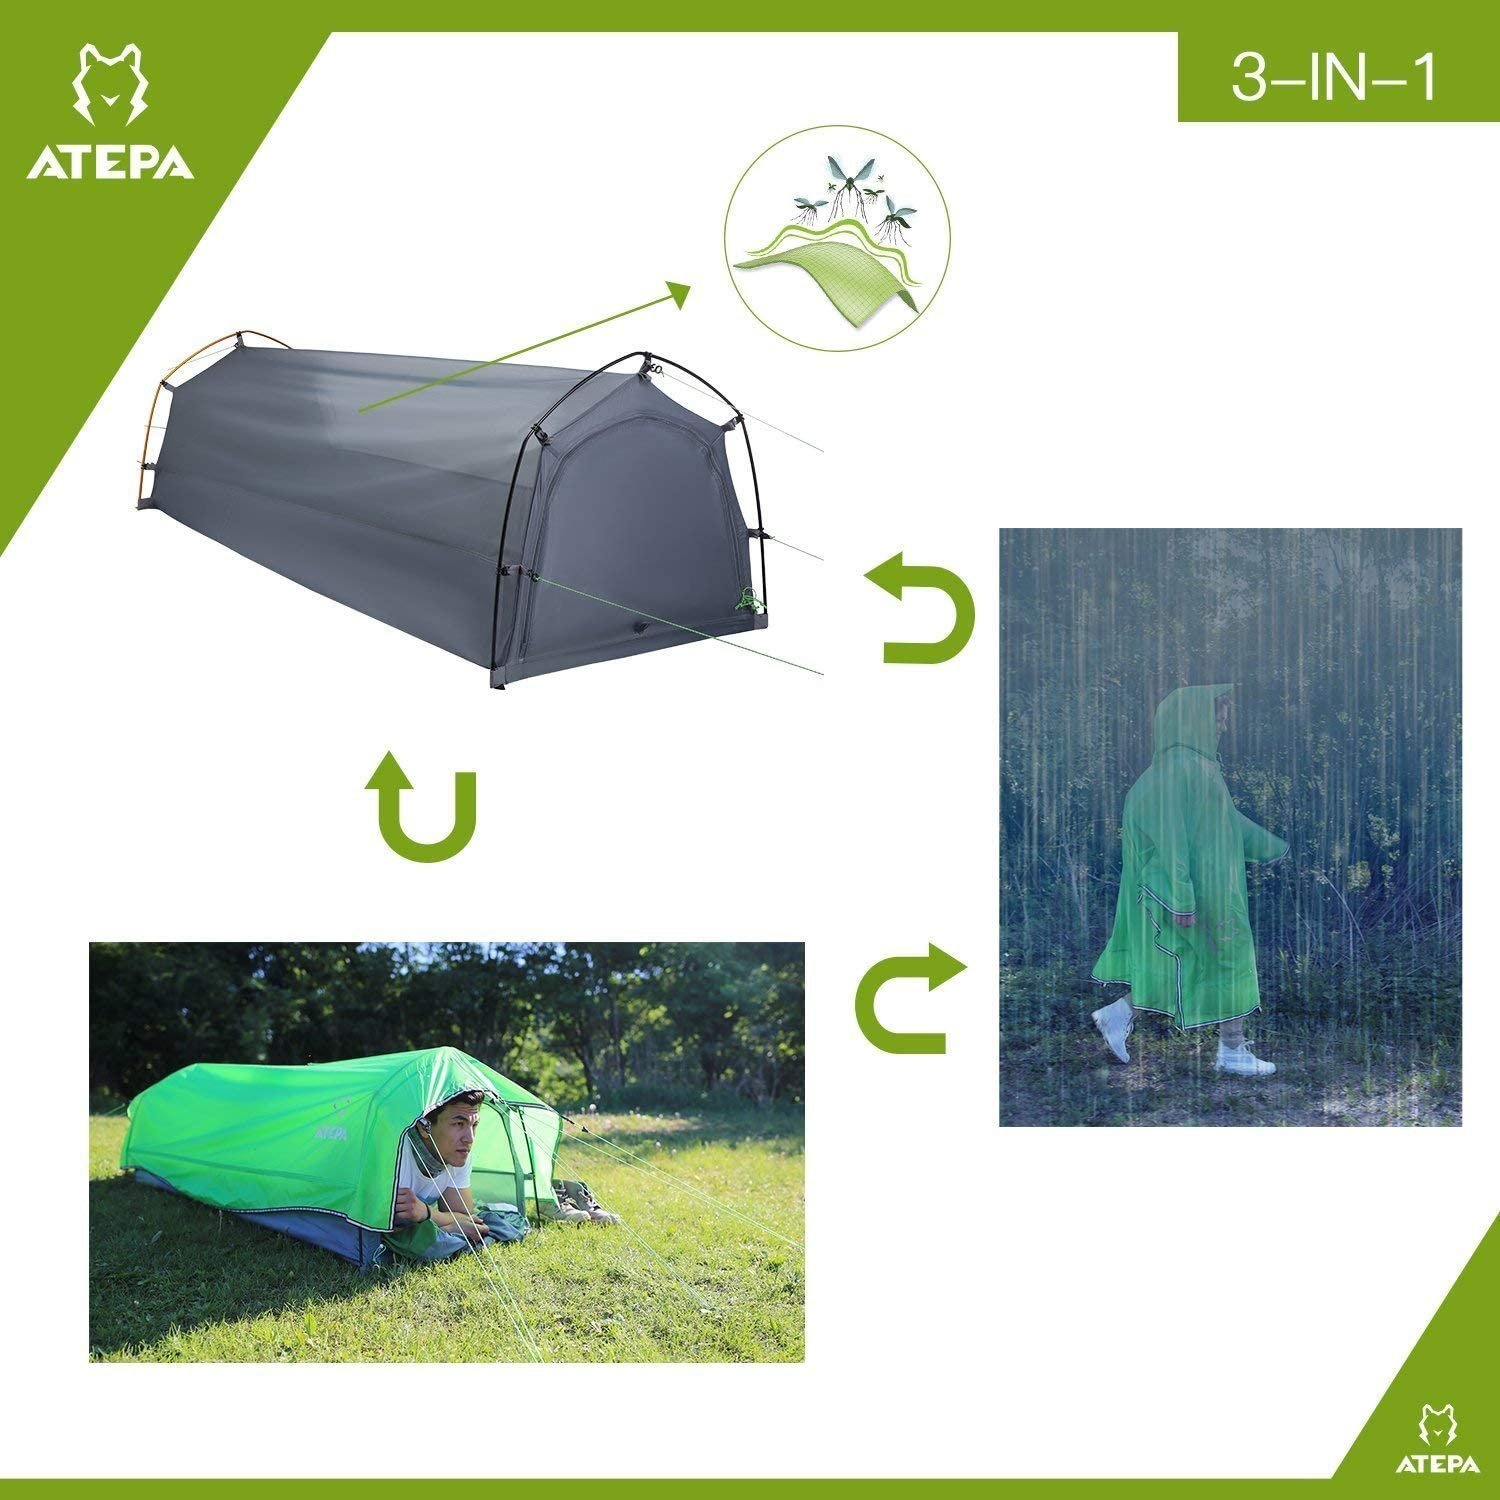 ATEPA One Person Waterproof Lightweight Tent 2.9lb ,3-in-1 Multipurpose 1 Person Bivy Tunnel Tent, Ultralight Single Expedition Military Poncho for Camping, Backpacking, Hiking, Outdoor, Green